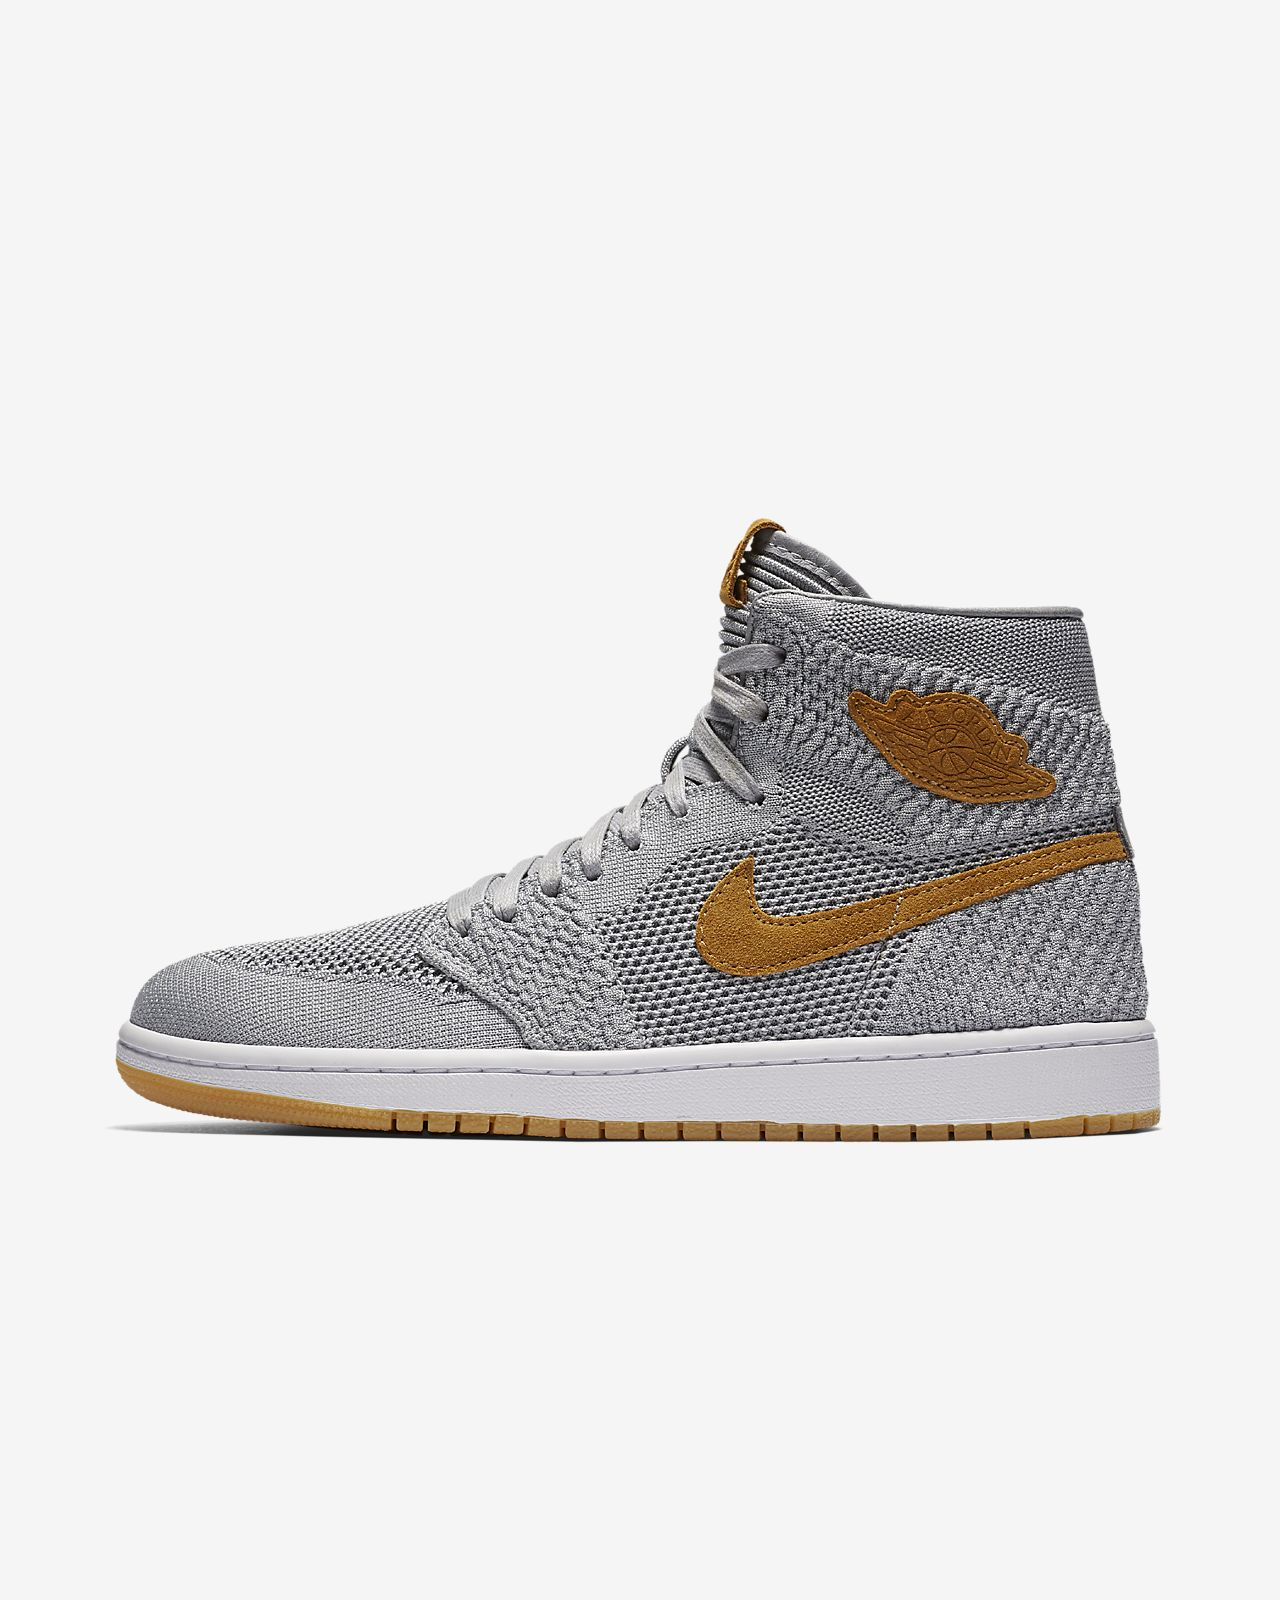 jordans retro 1 for women nz